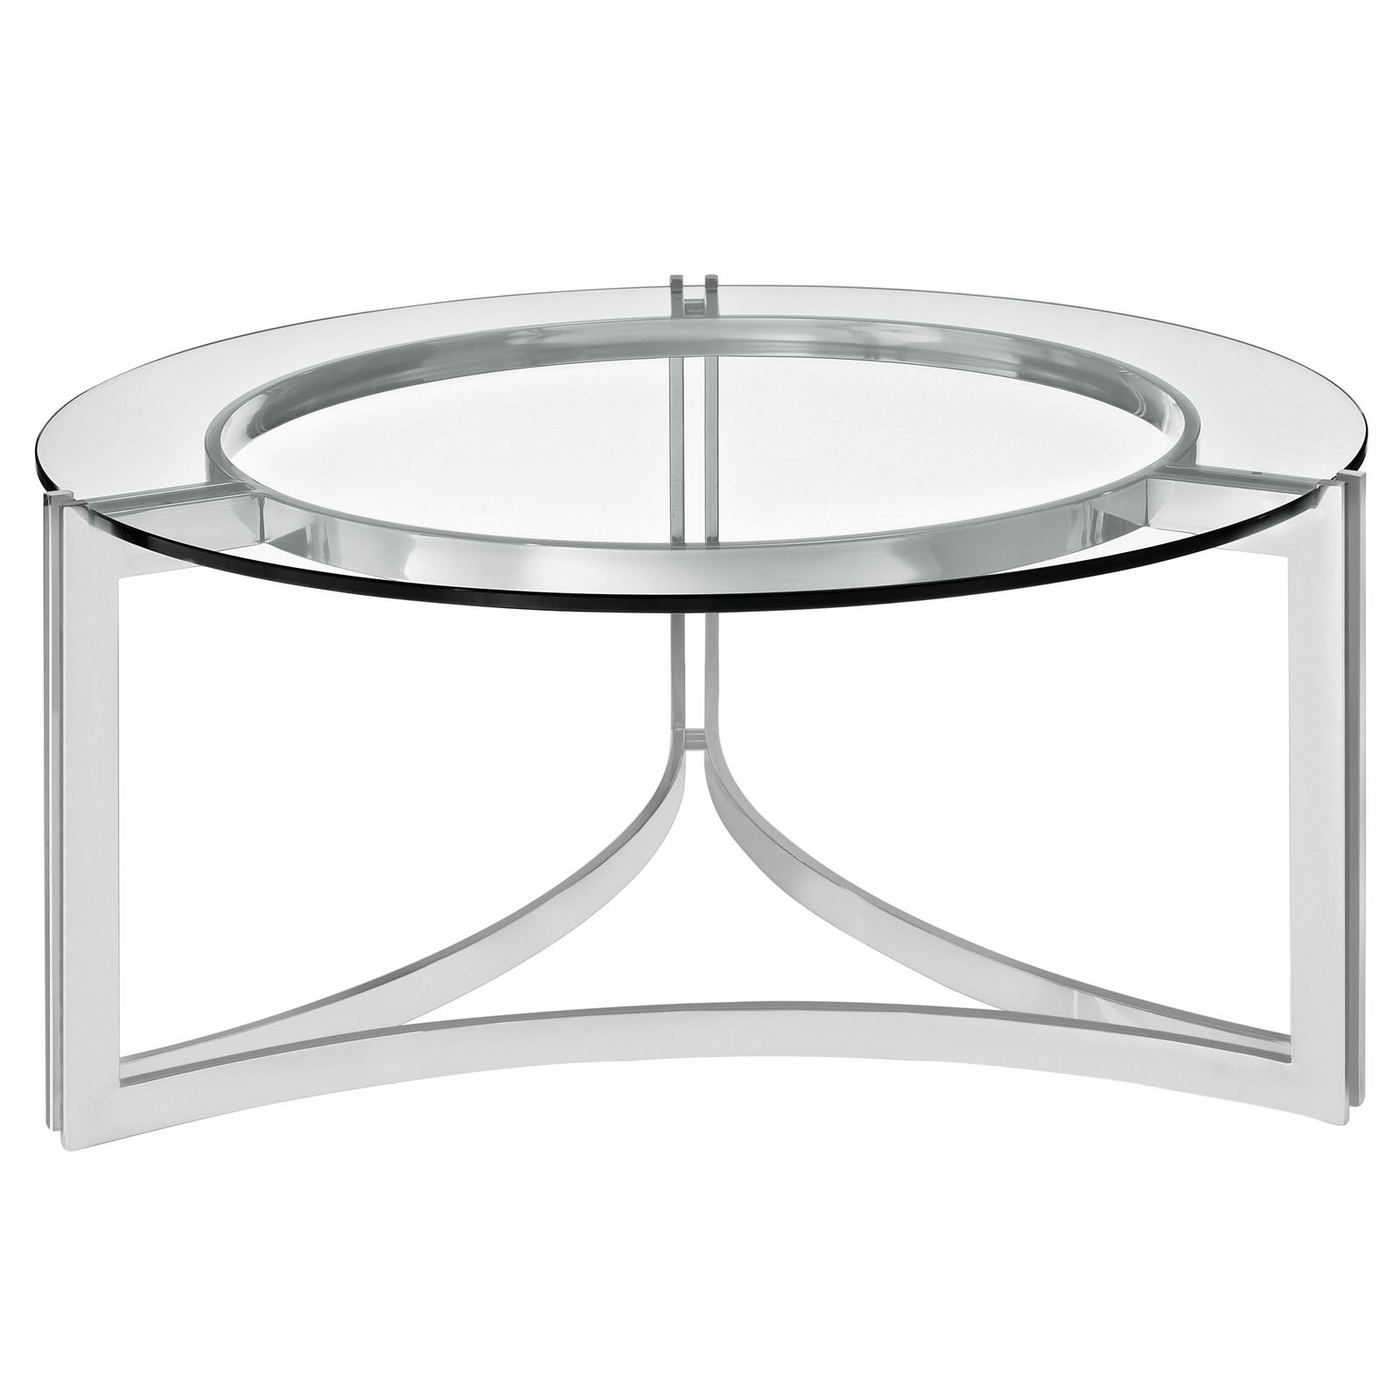 Modern Designer Large Round Coffee Table Glass Top Stainless Steel: Signet Modern Stainless Steel Coffee Table W/ Round